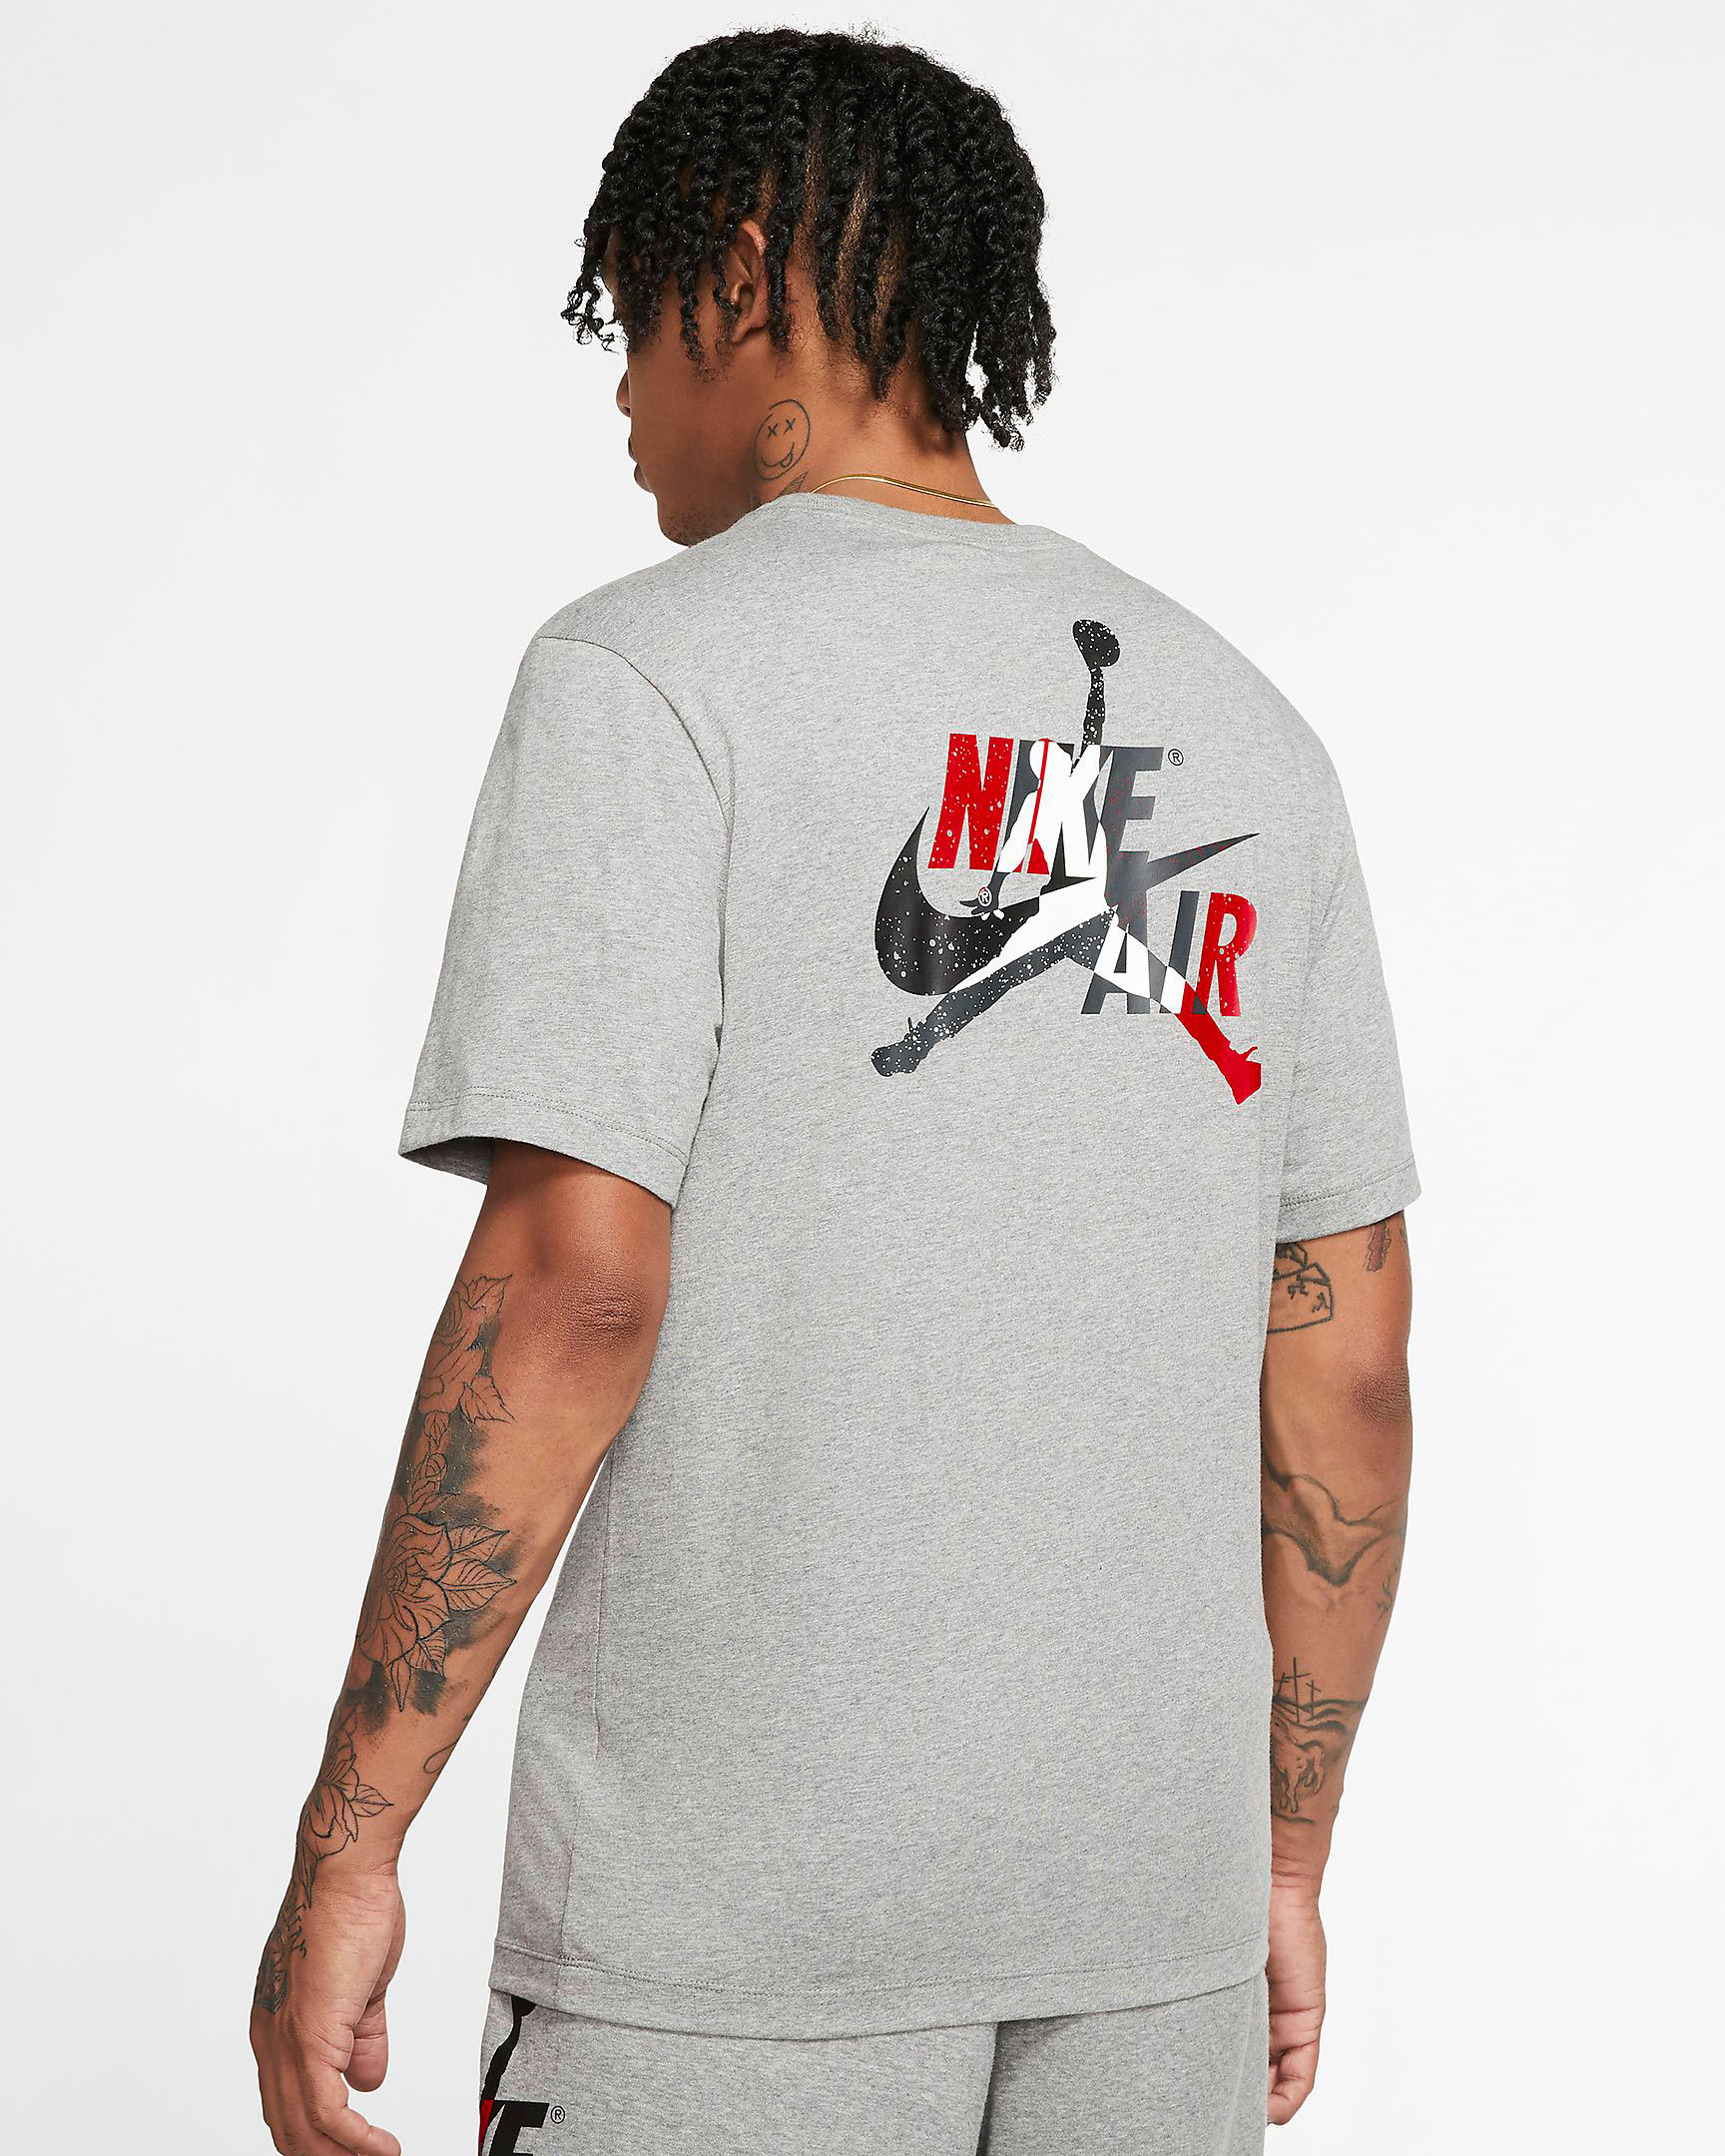 jordan-jumpman-classics-shirt-grey-red-black-2